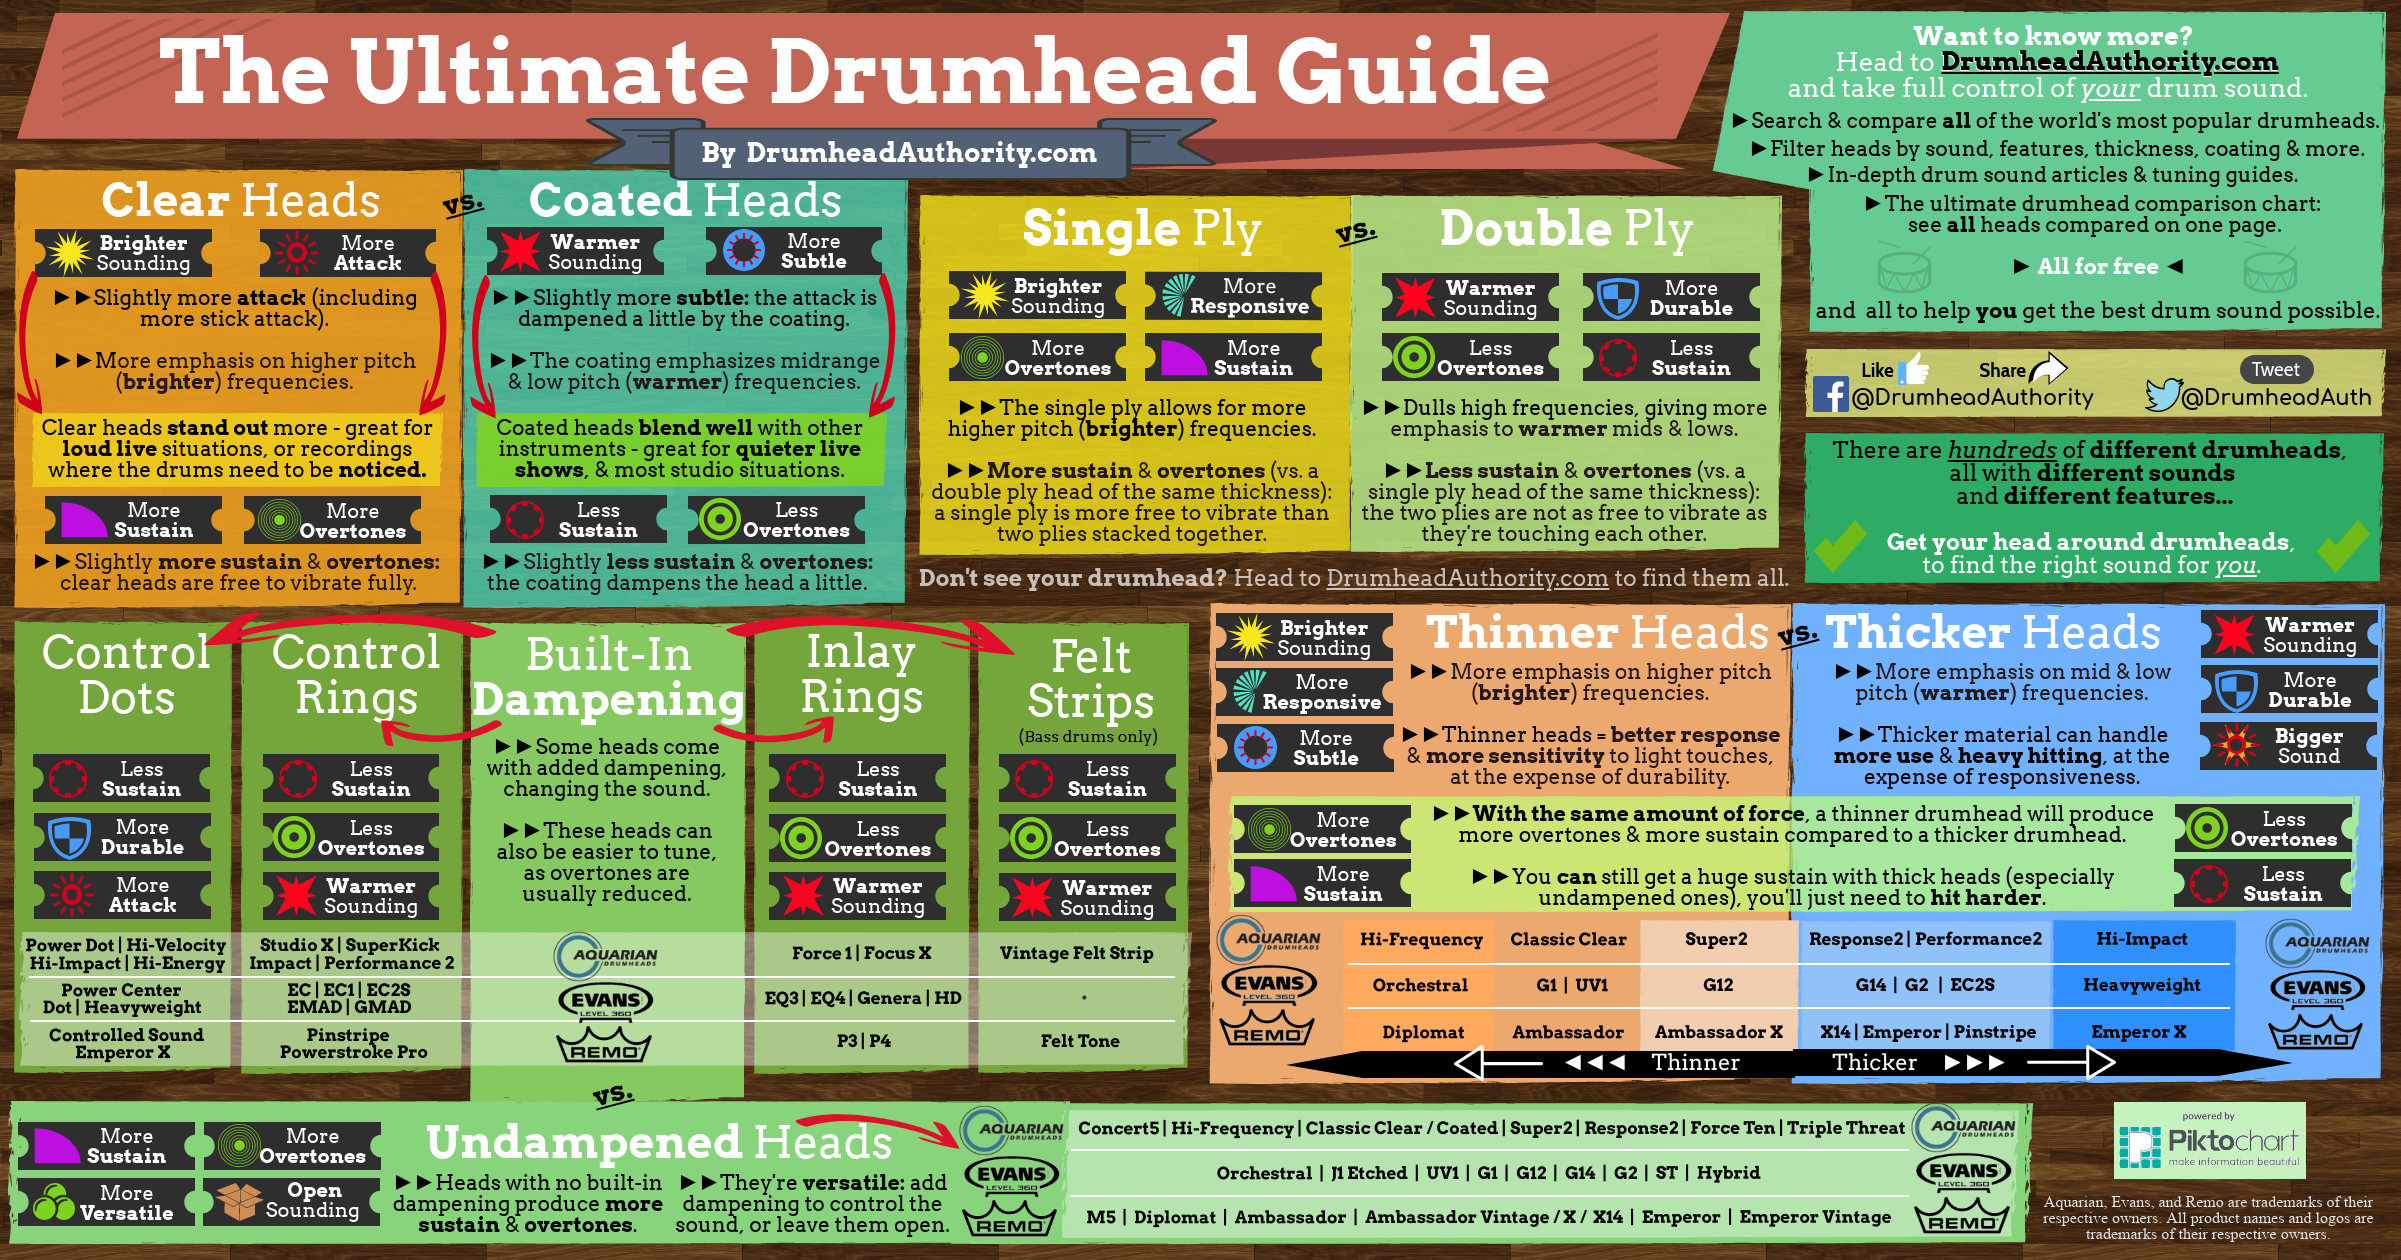 The Best Drumhead? Secrets, Tips, and Everything You Need To